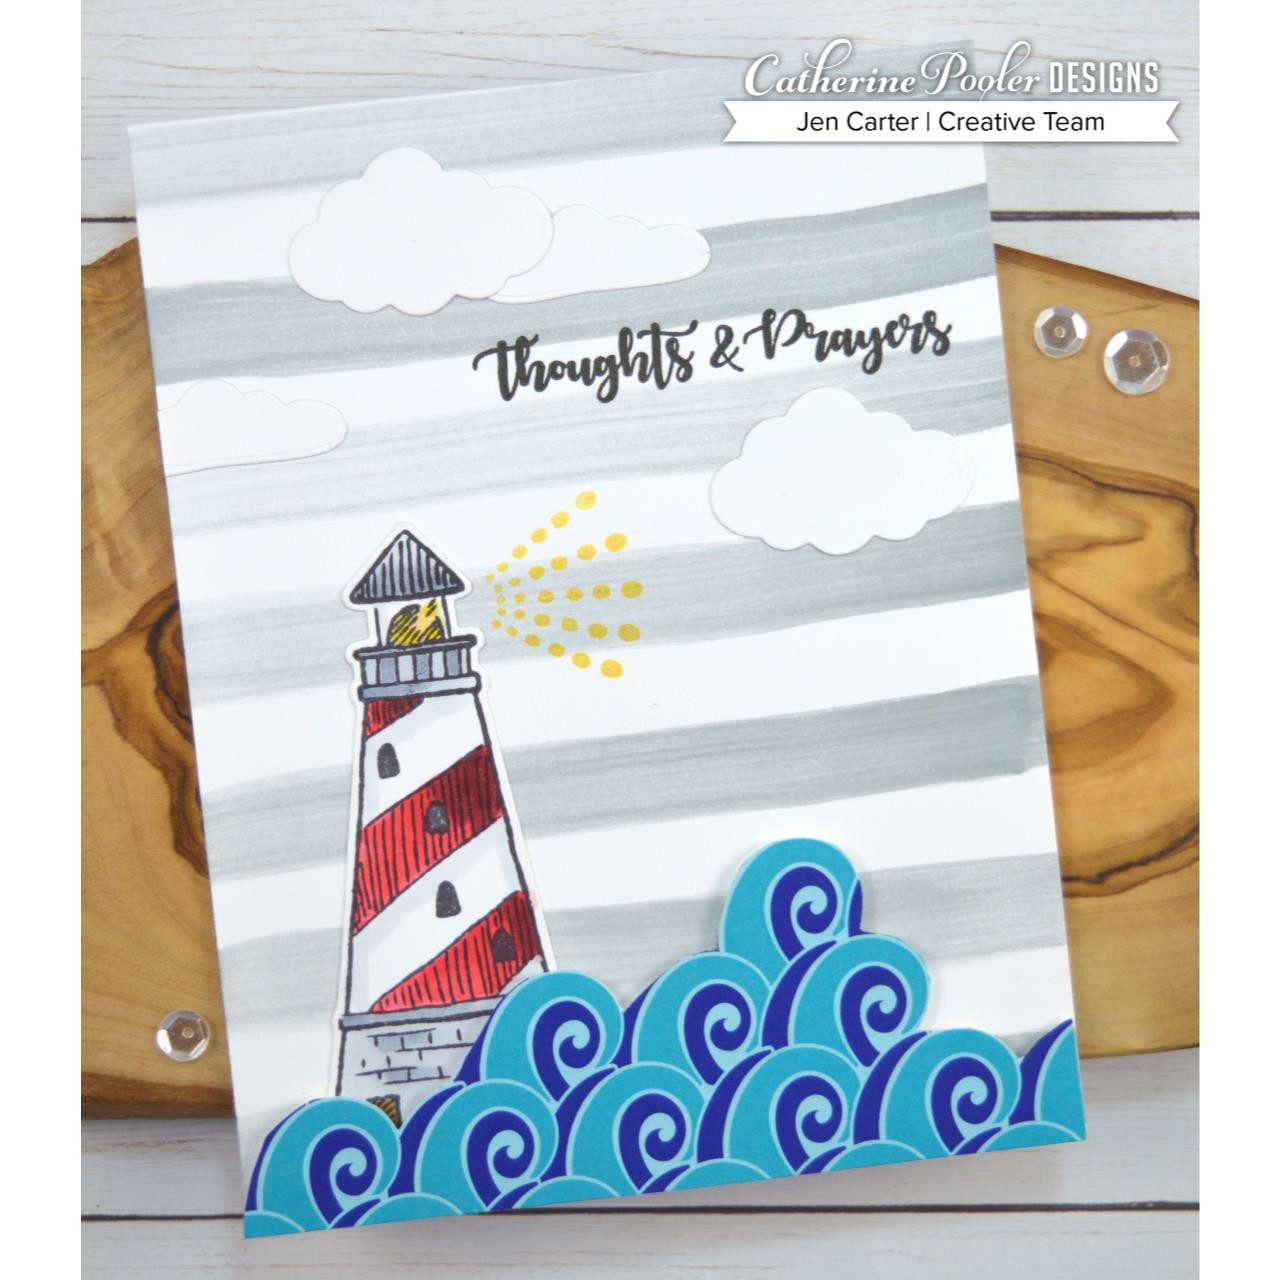 She Sells Seashells, Catherine Pooler Clear Stamps - 819447023578